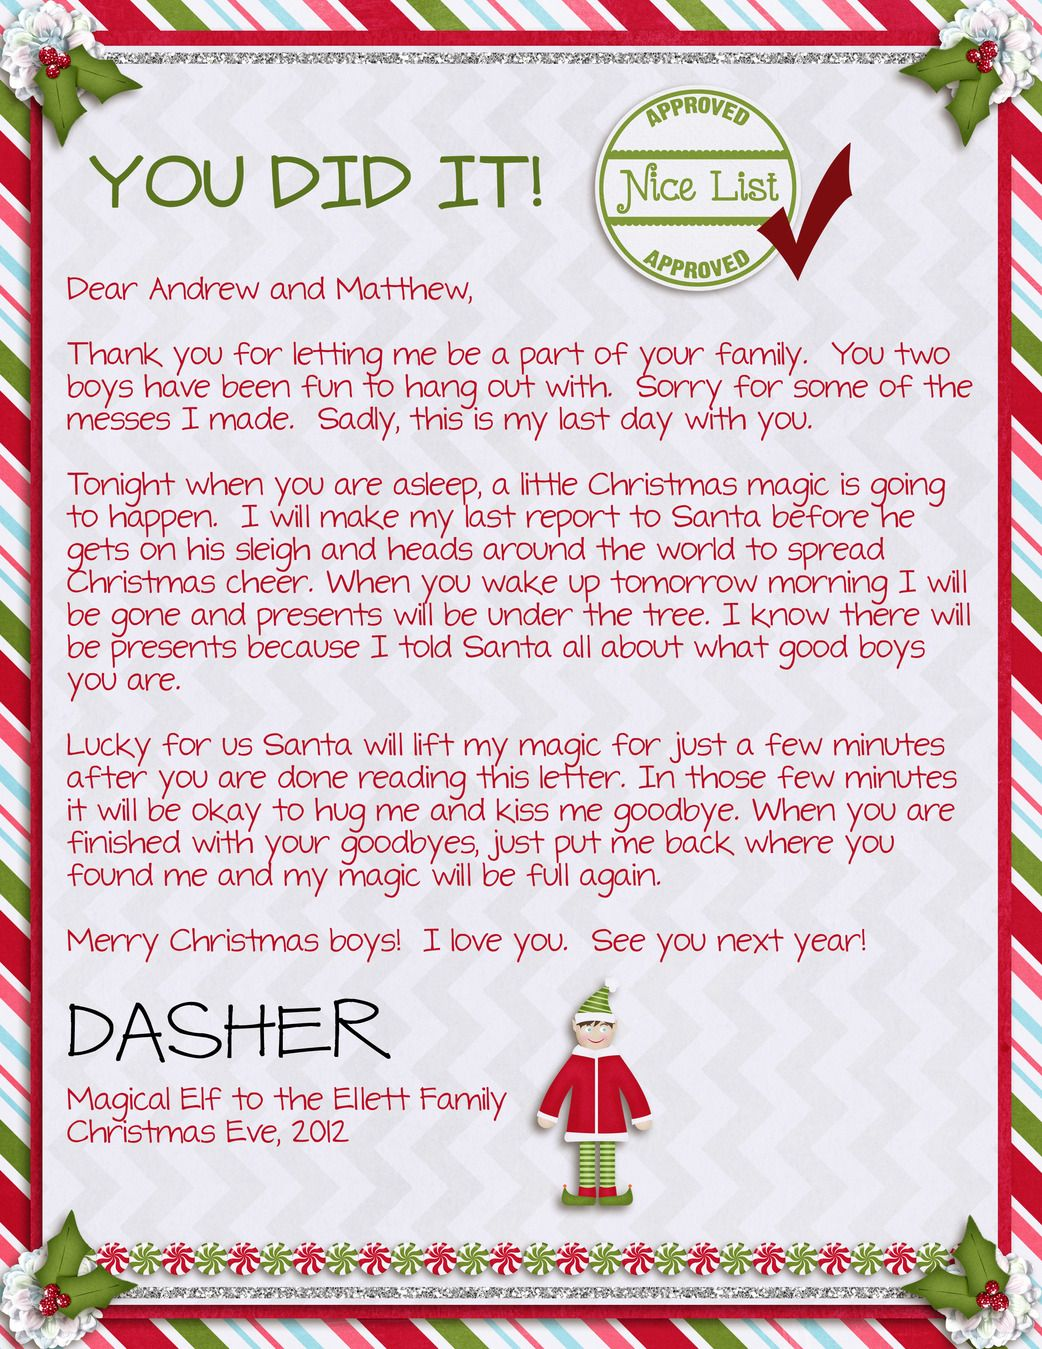 MjAj Designs Elf On The Shelf Adventures  Week Three  Goodbye